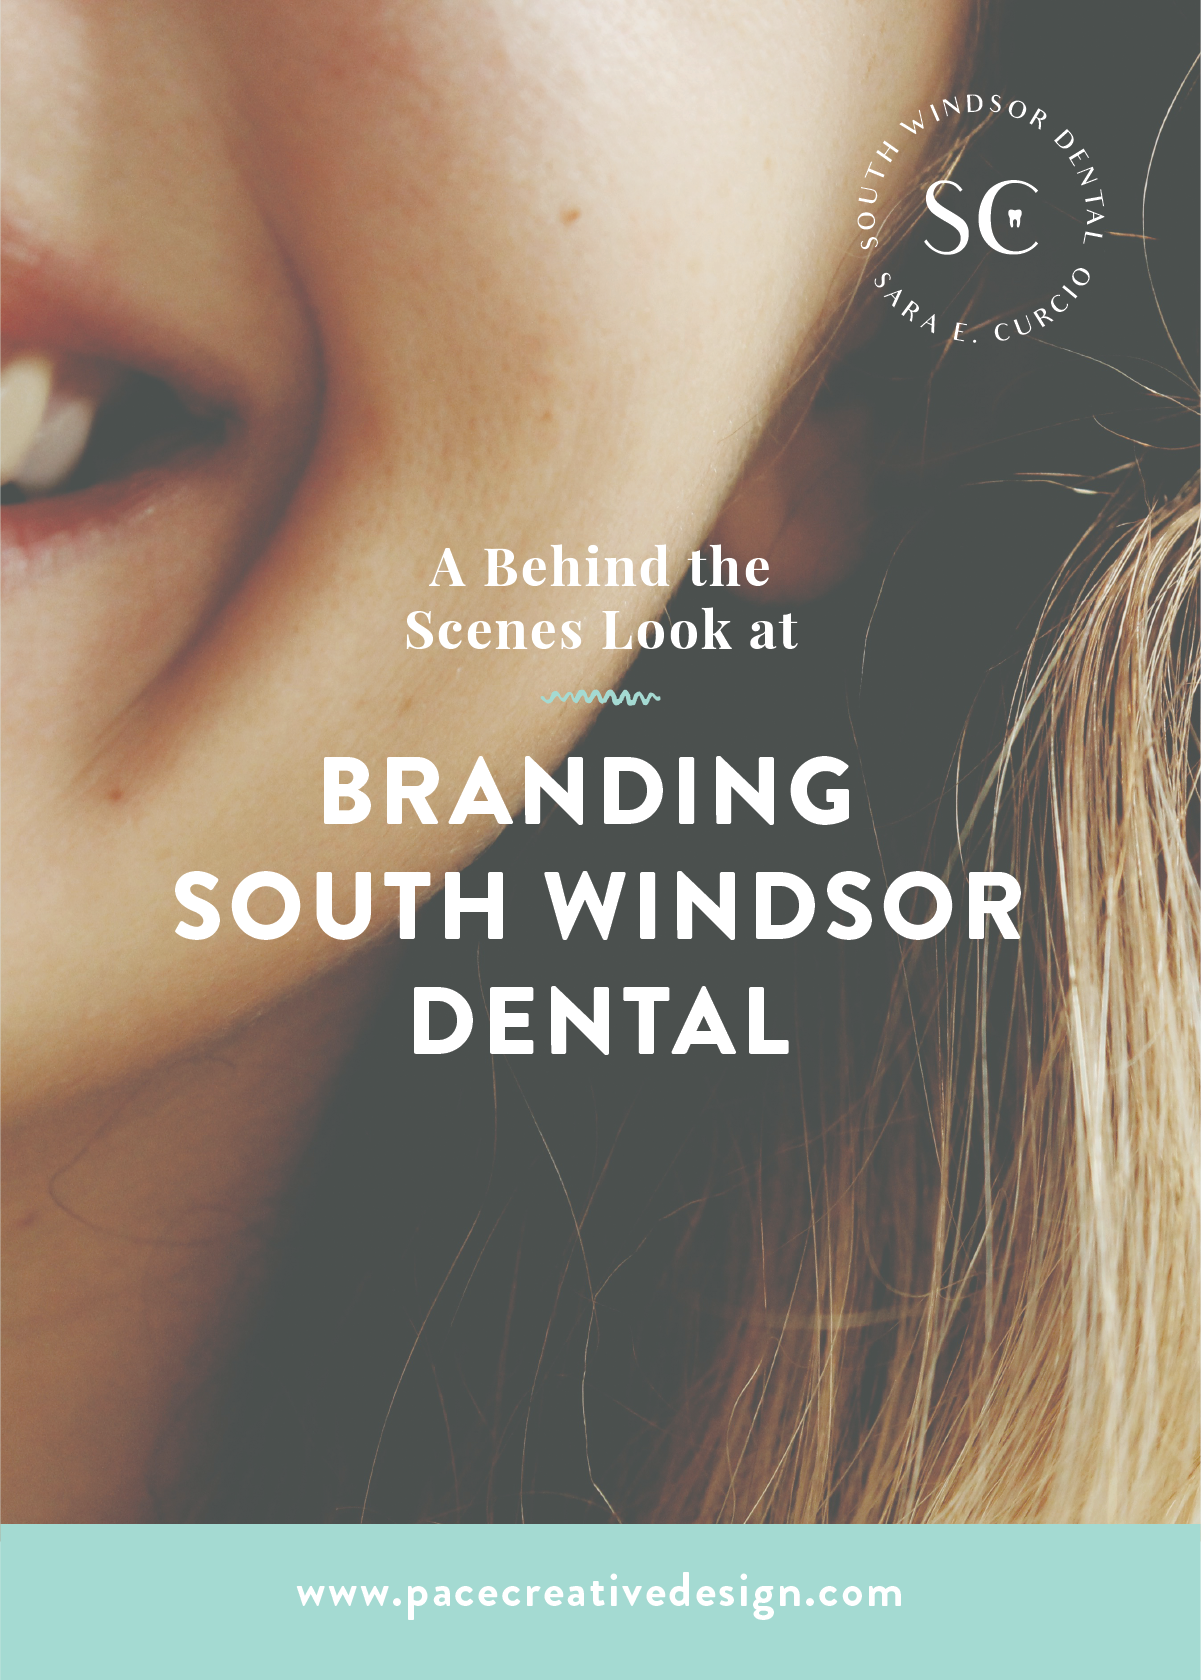 South Windsor Dental brand design by Pace Creative Design Studio